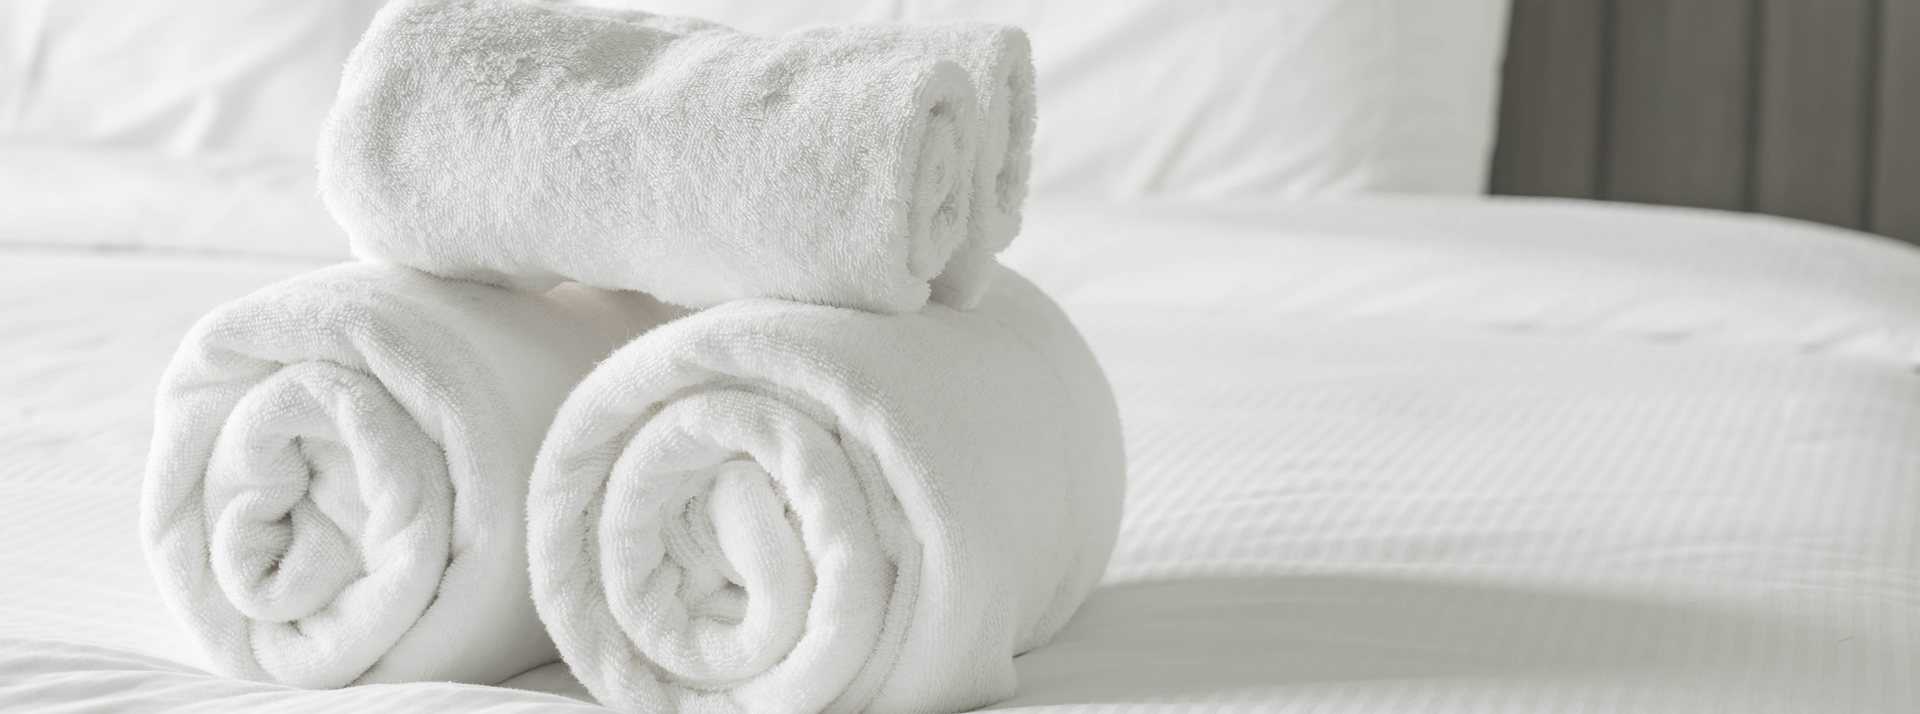 towels-on-bed